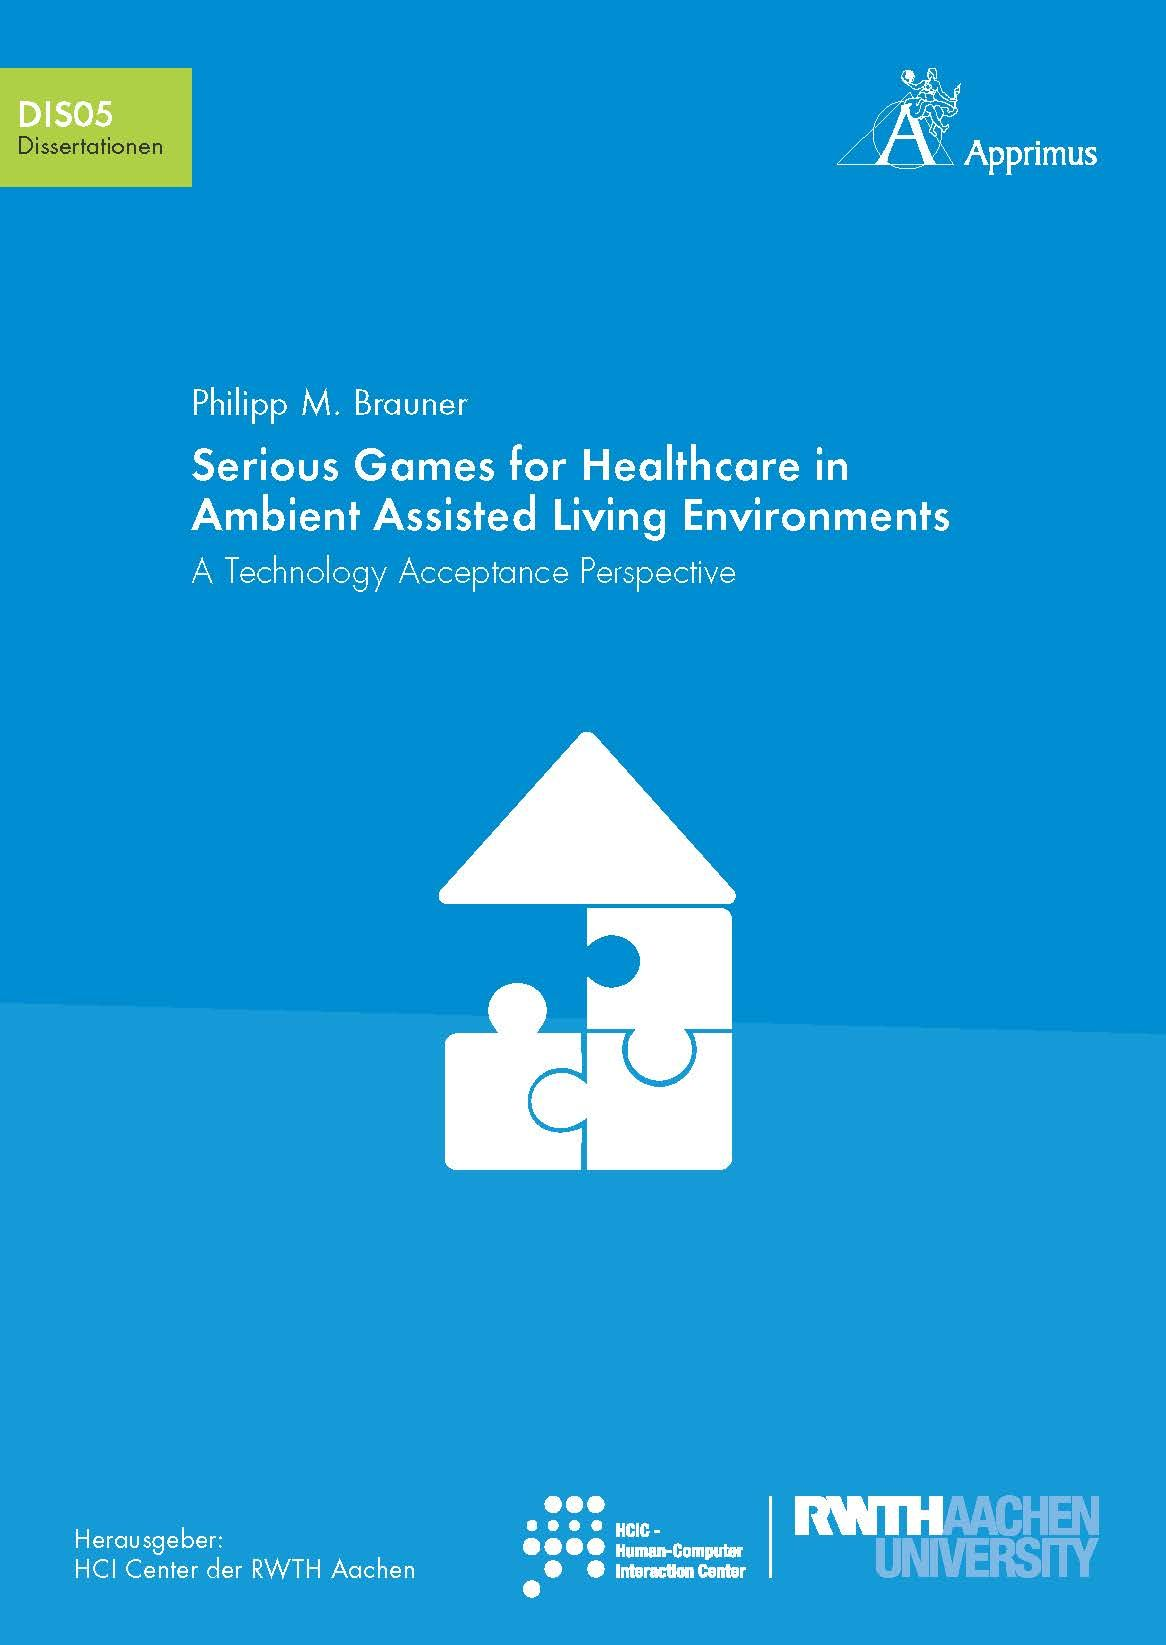 Serious Games for Healthcare in Ambient Assisted Living Environments. A Technology Acceptance Perspective